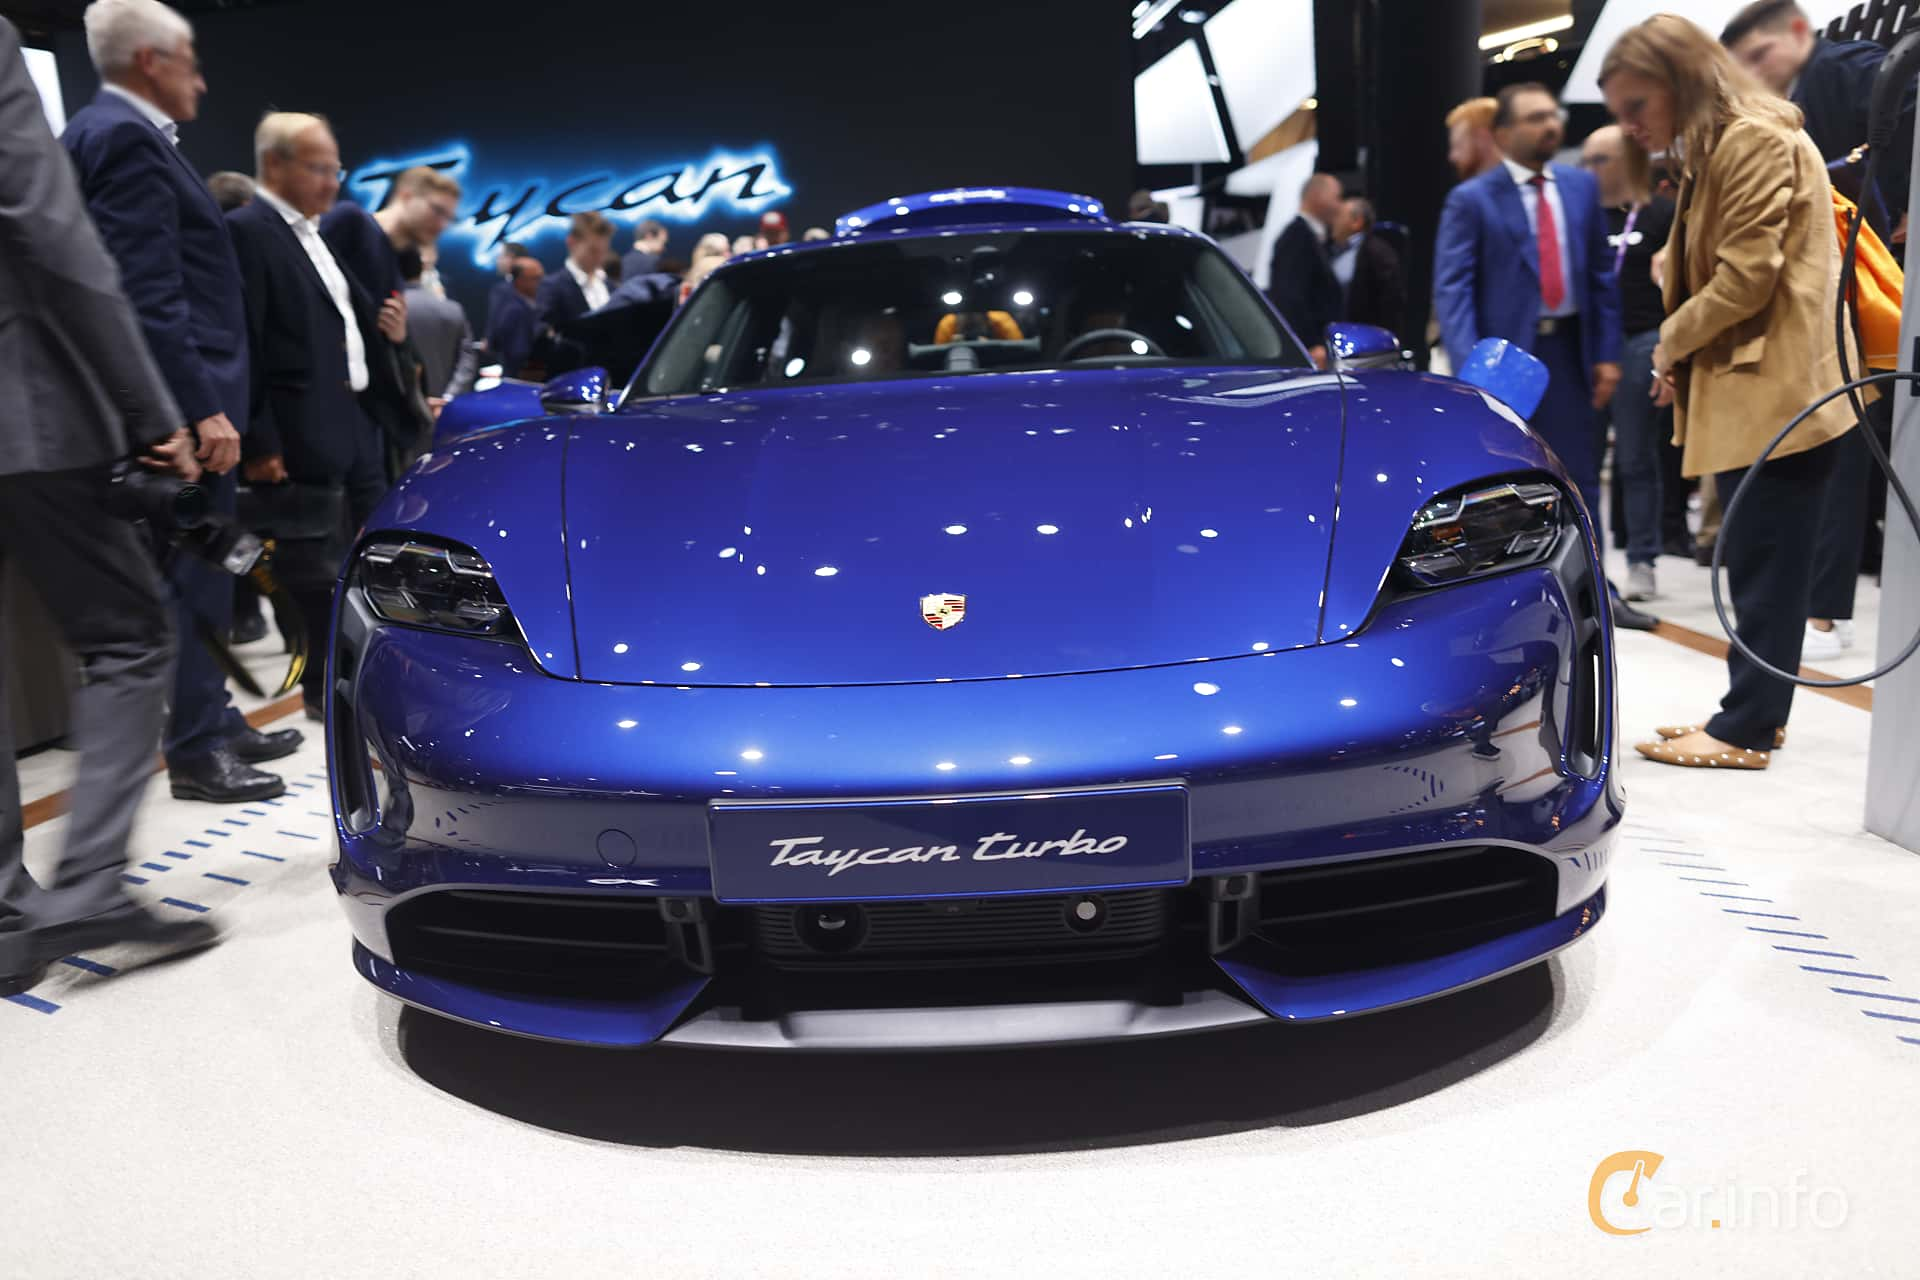 Front  of Porsche Taycan Turbo  Single Speed, 680ps, 2020 at IAA 2019